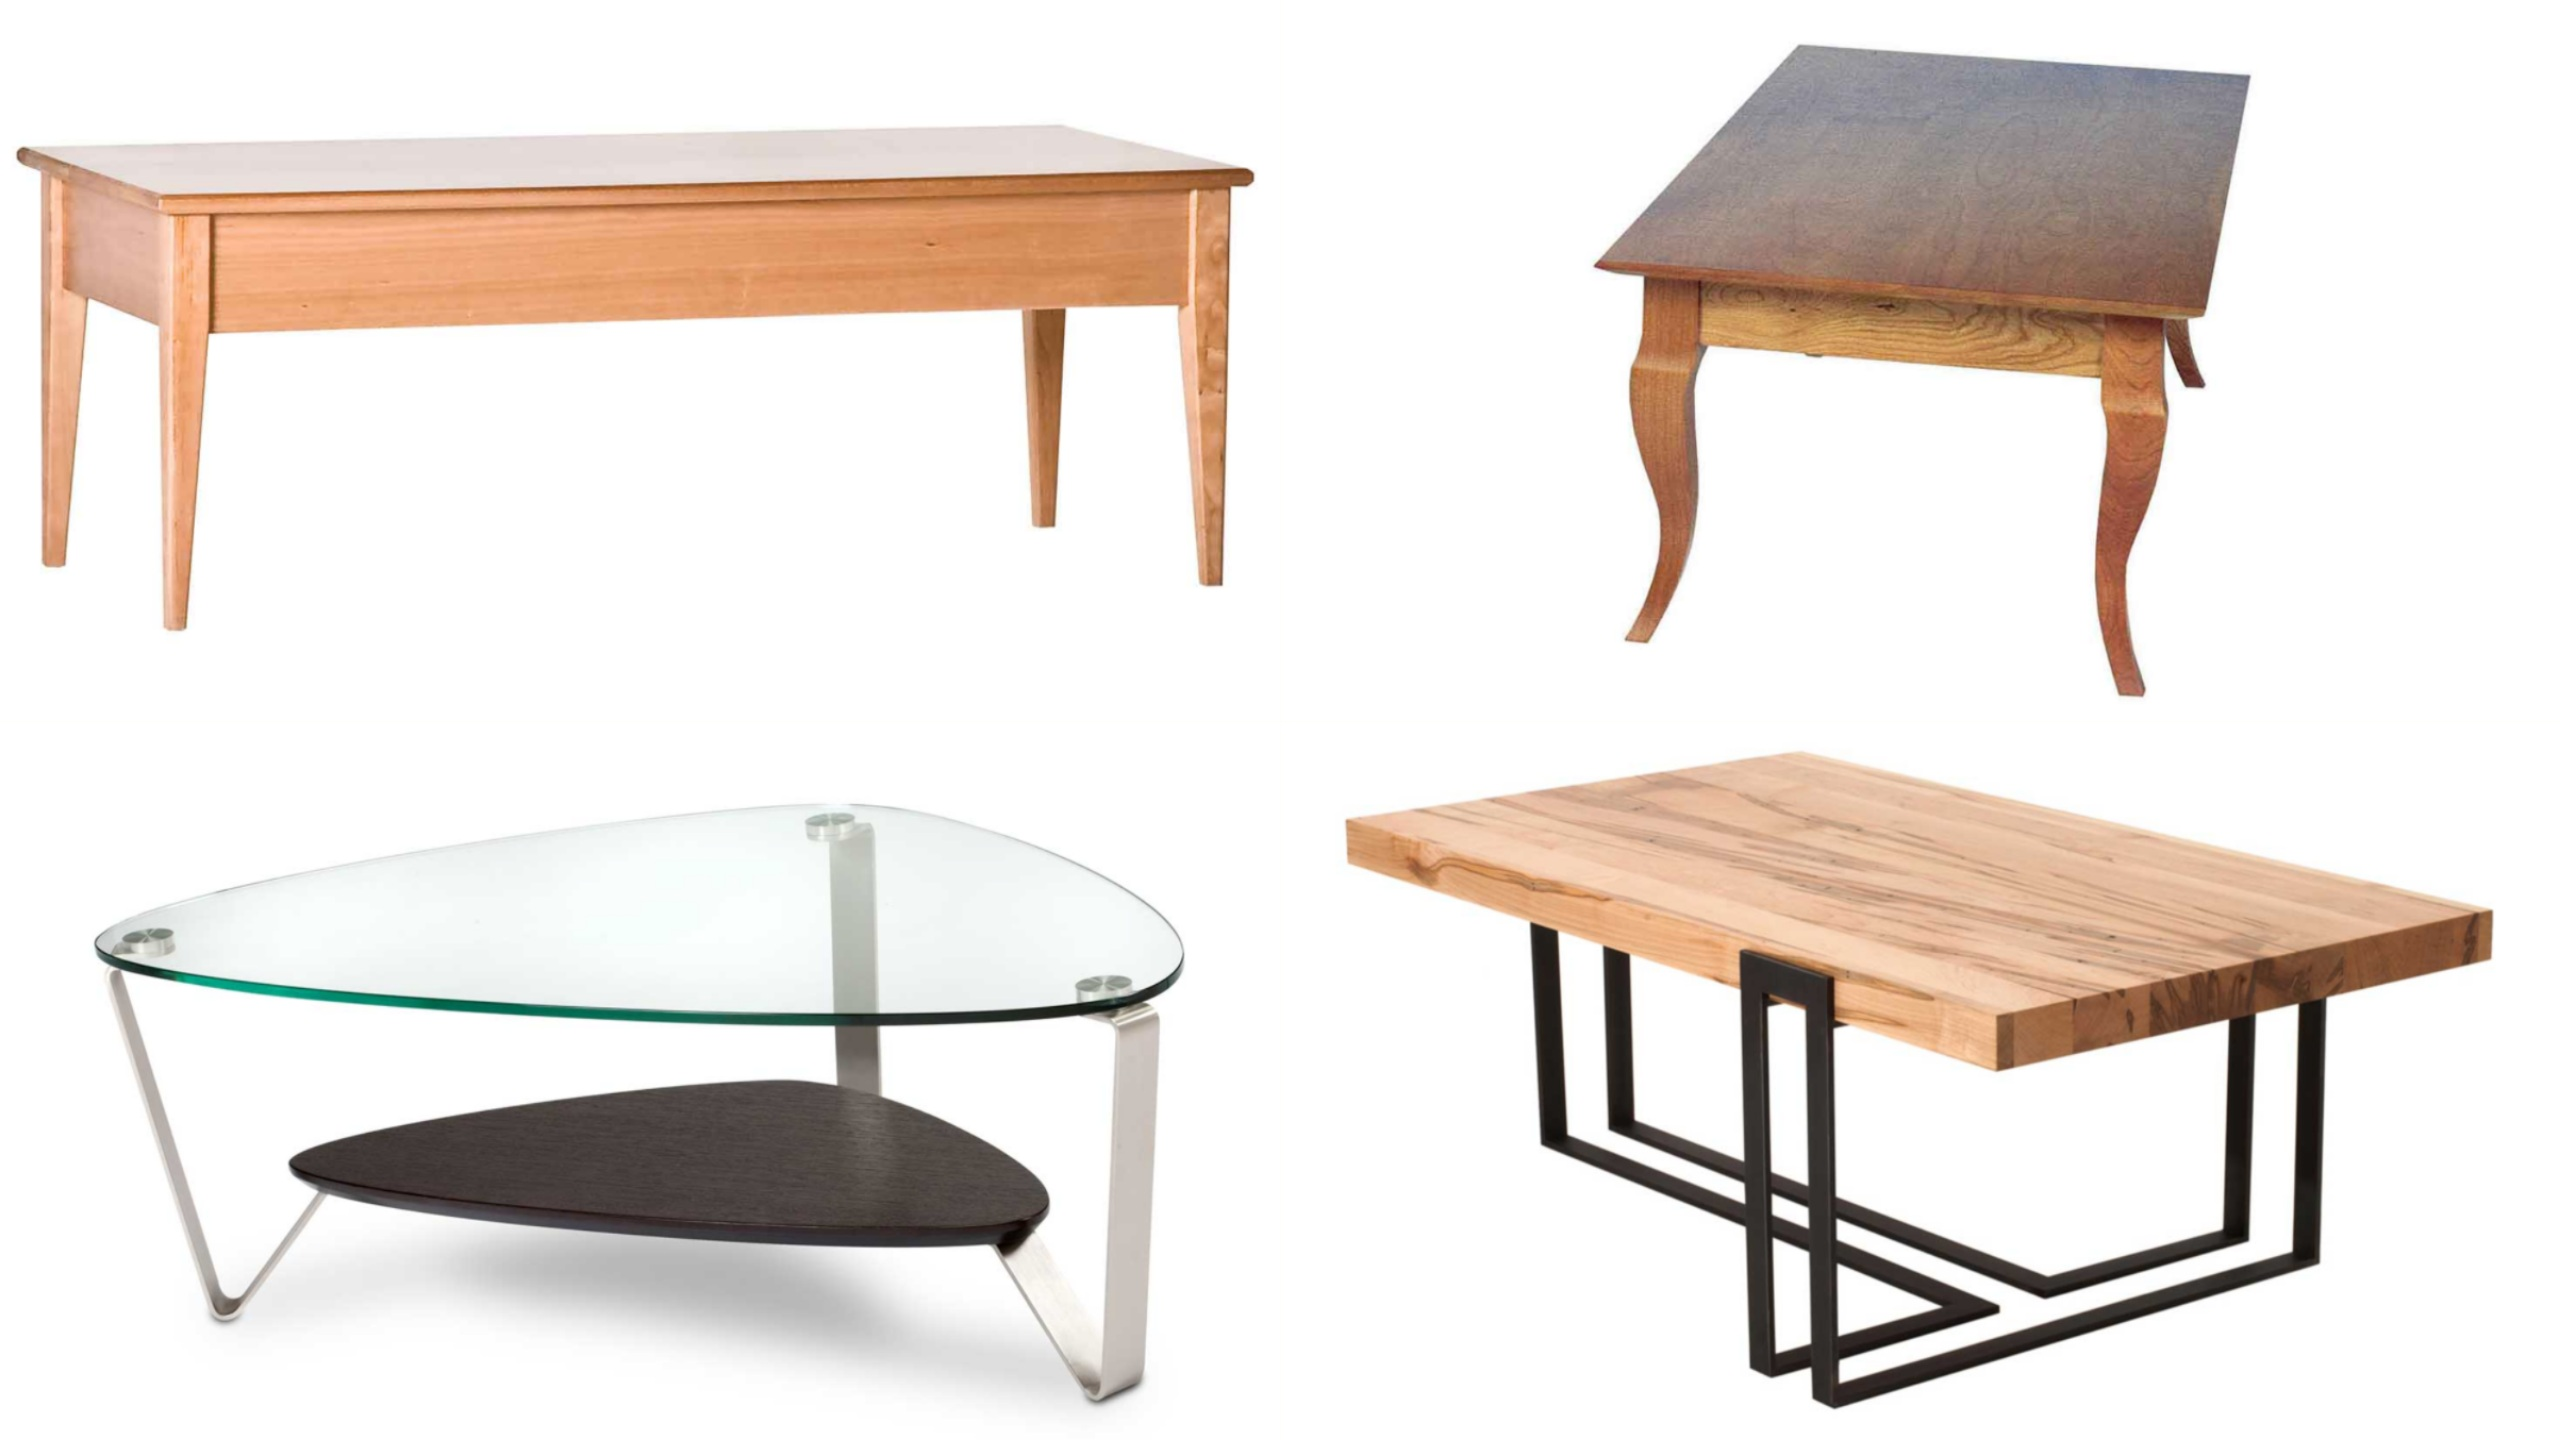 Circle Furniture How To Choose The Perfect Coffee Table For You,Danish Mid Century Upholstery Fabric